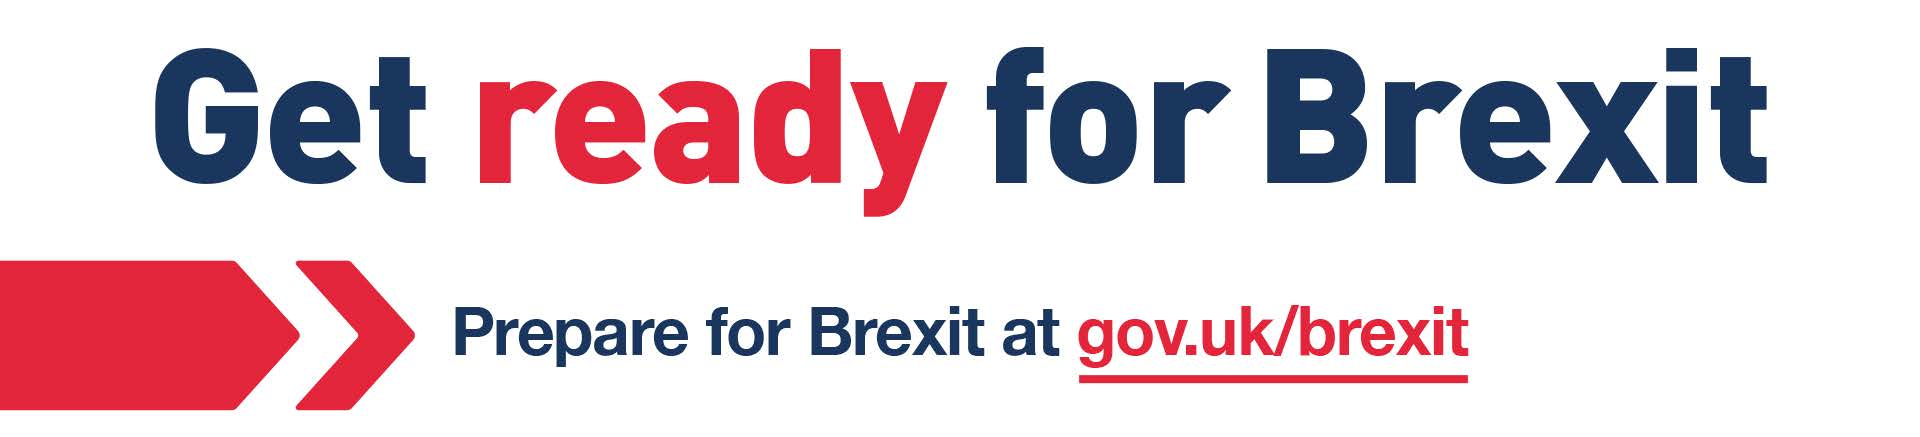 Get ready for Brexit - banner